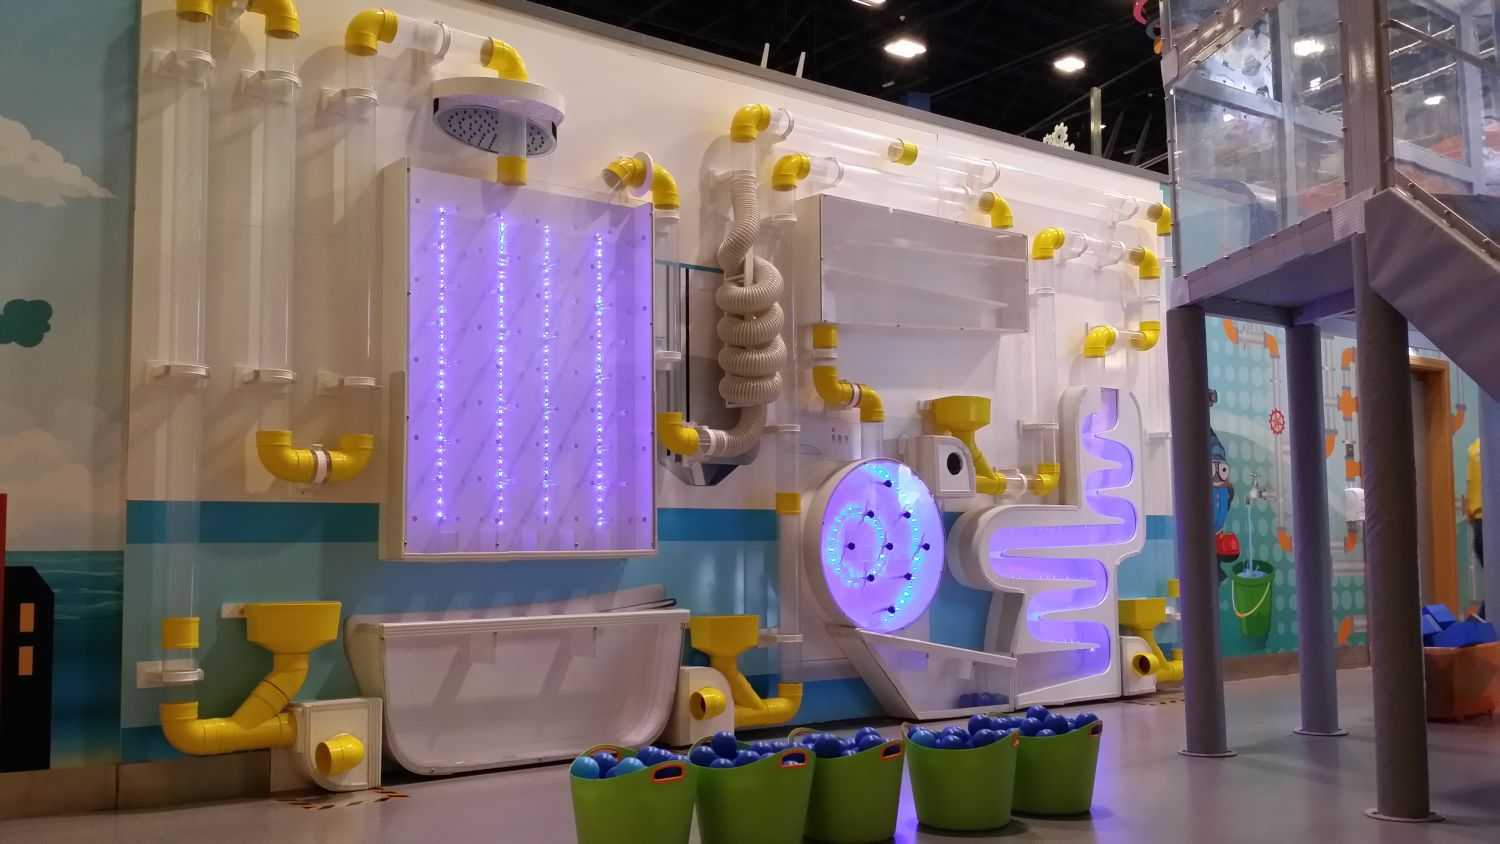 plumbing-system-ball-play-wall-in-yas-mall-uae.jpg